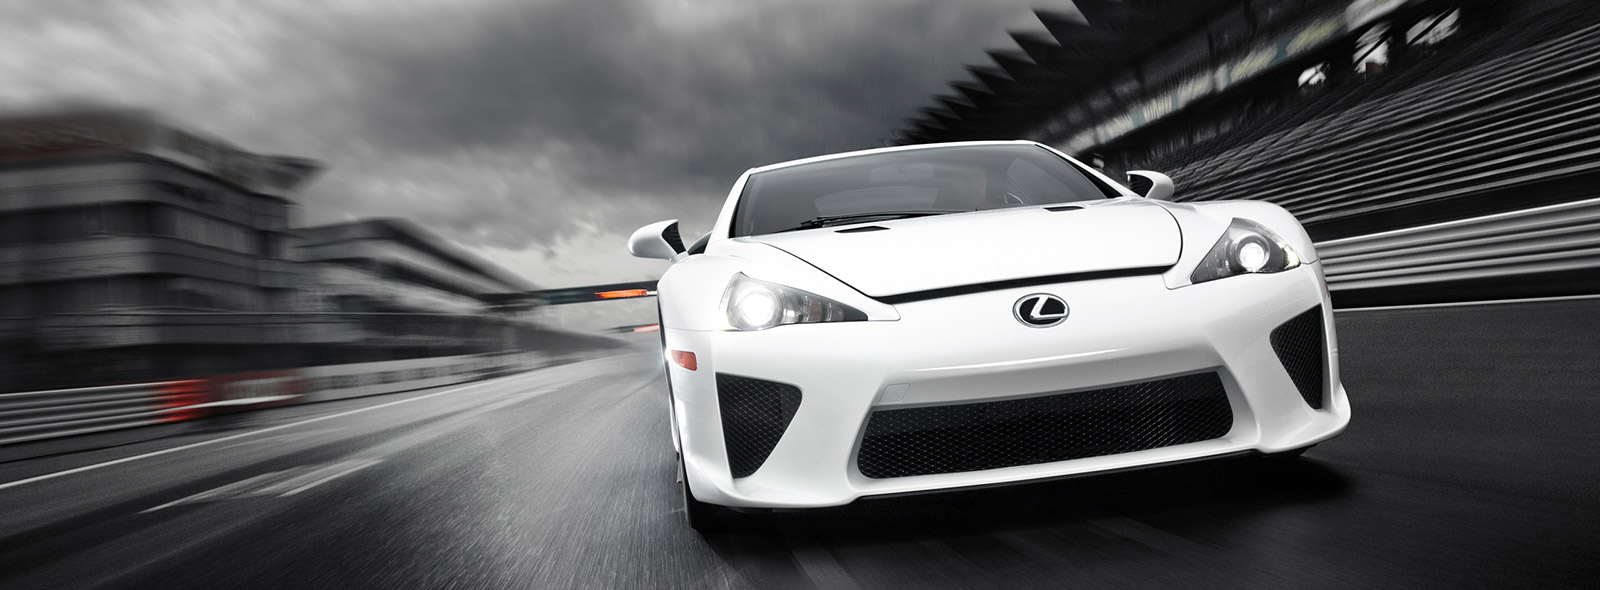 Lexus LFA Supercar White